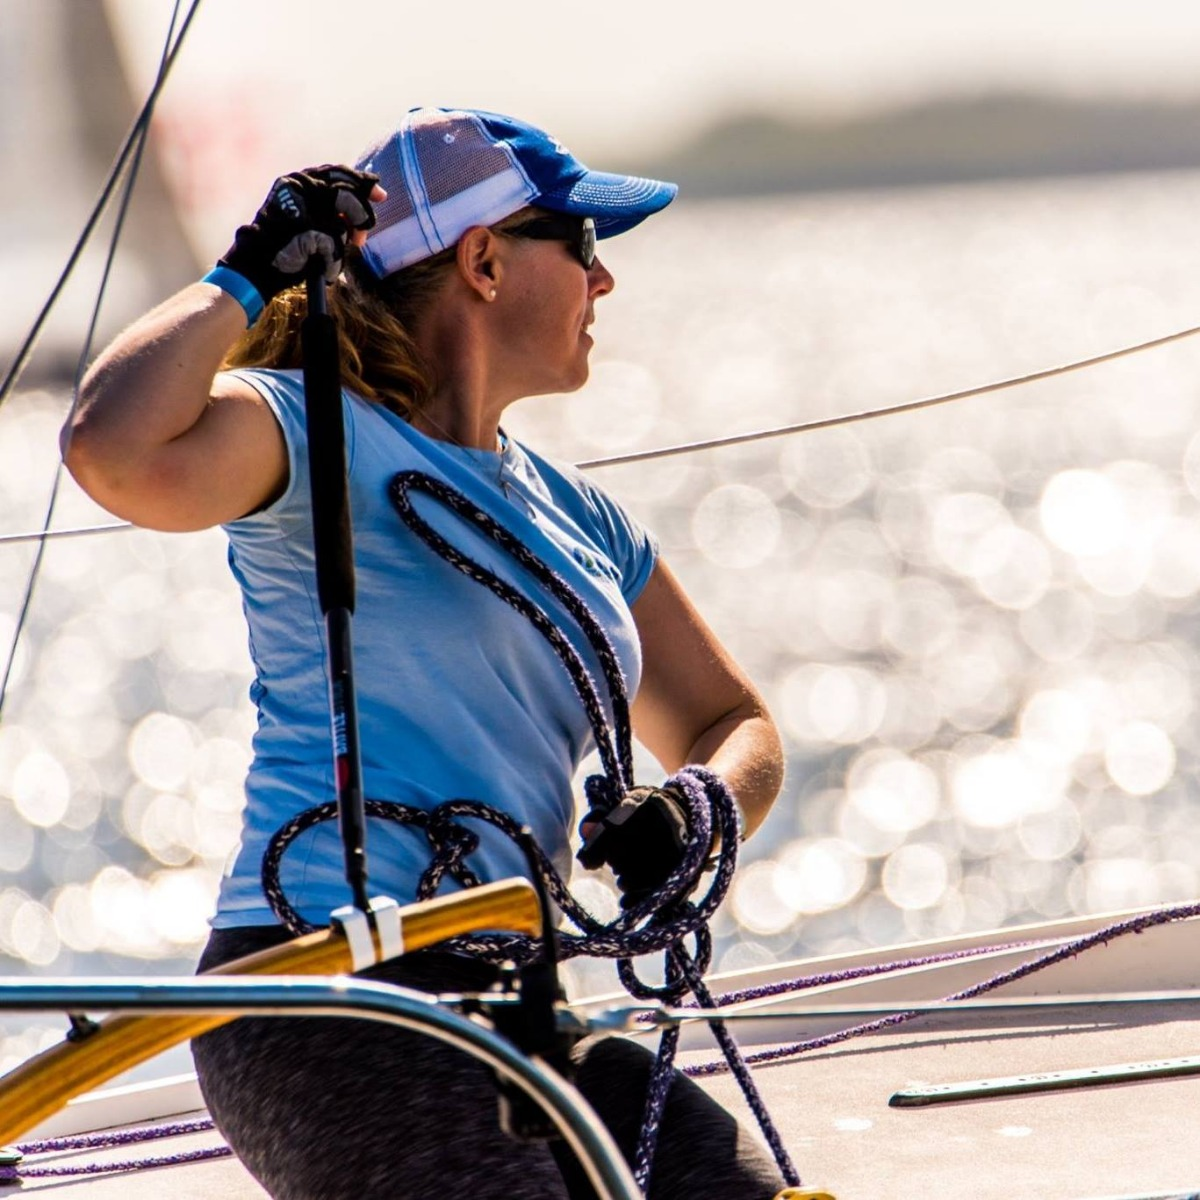 Skipper Erica Beck Spencer was named the Top Female Skipper at J/24 National Championships